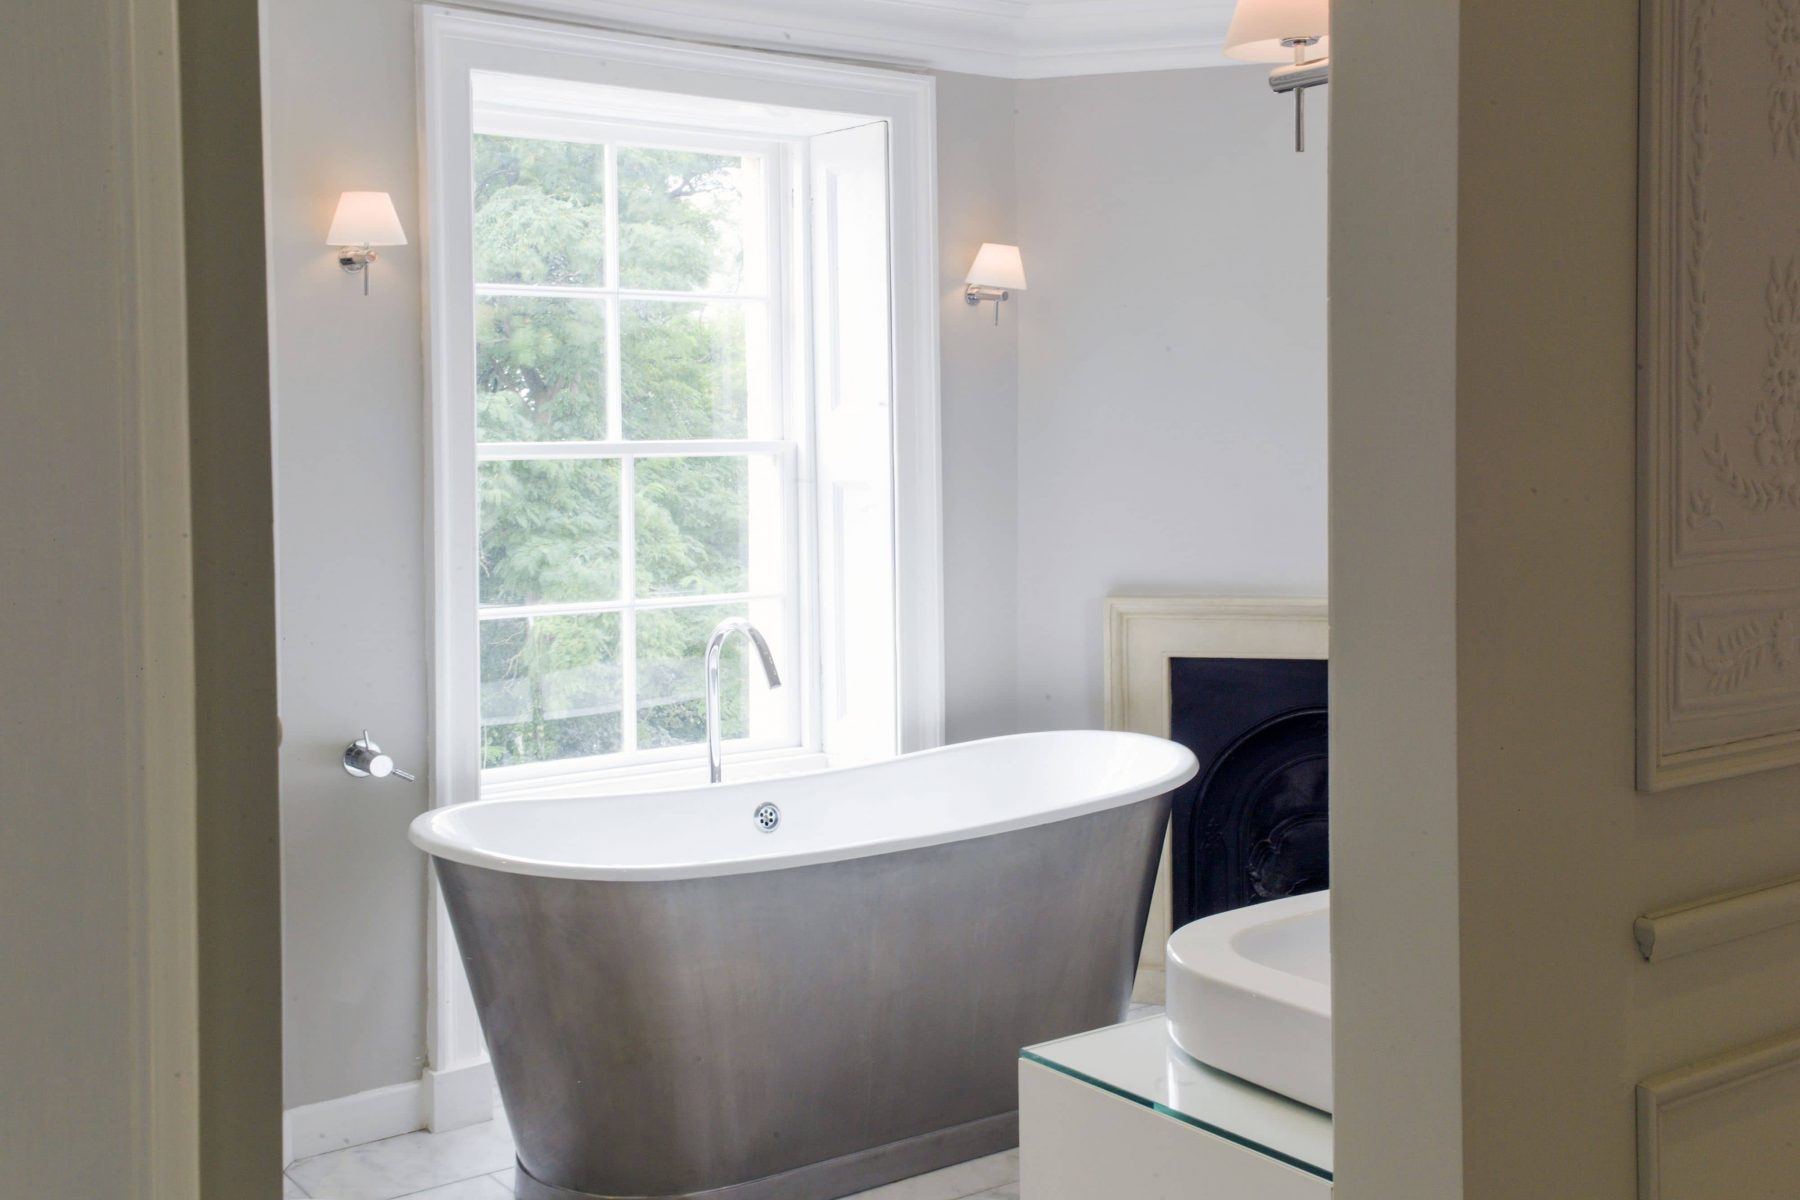 Cast iron bath tub with sash window